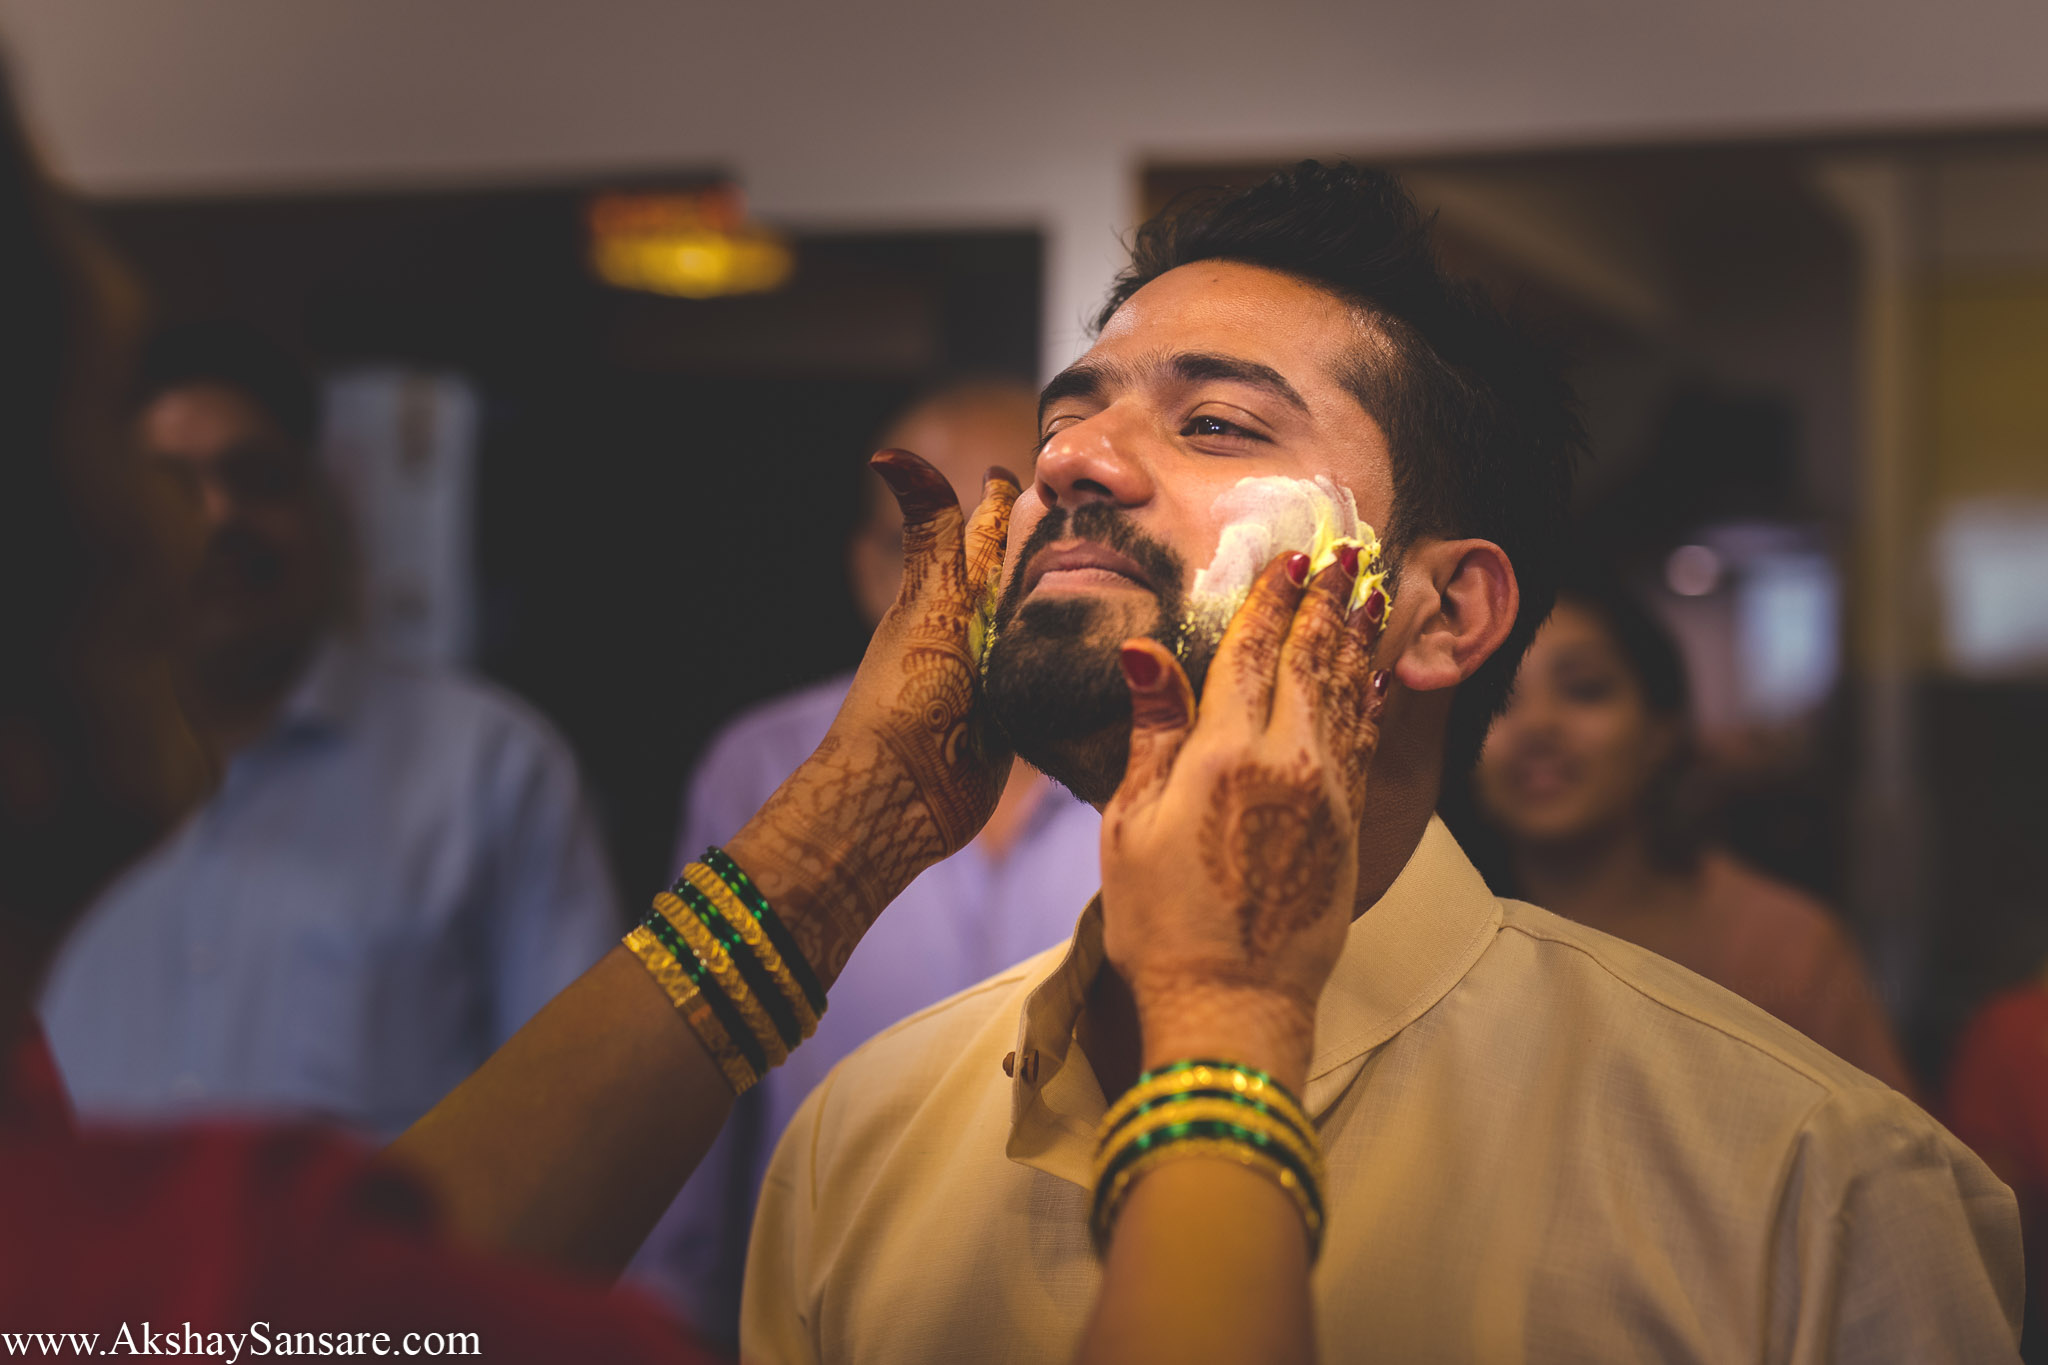 Ajay & Devika Akshay Sansare Photography Best Candid wedding photographer in mumbai india1.jpg